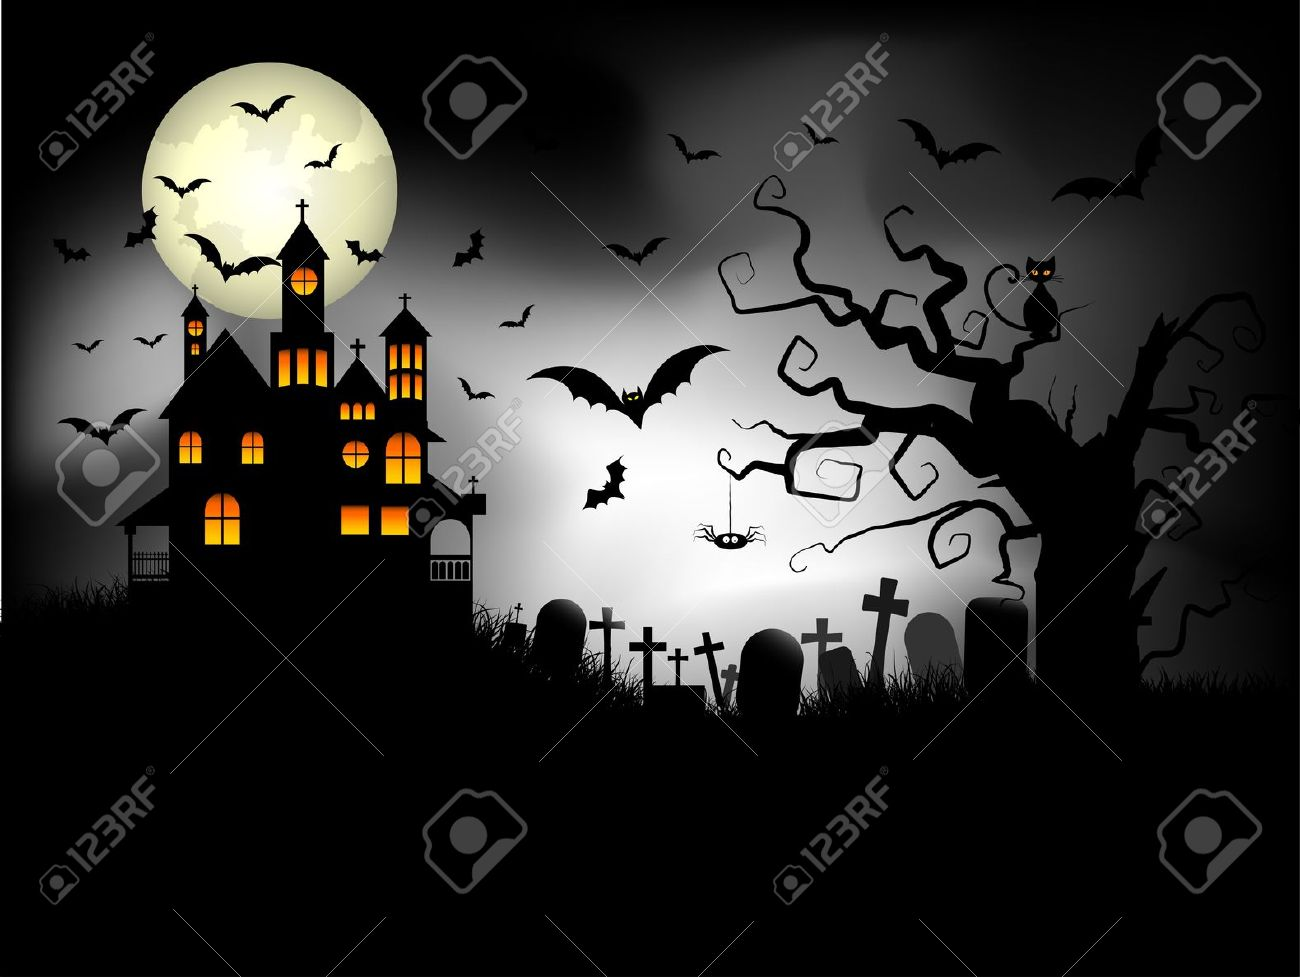 Halloween Spooky House.Halloween Background With Spooky House Against A Moonlit Sky